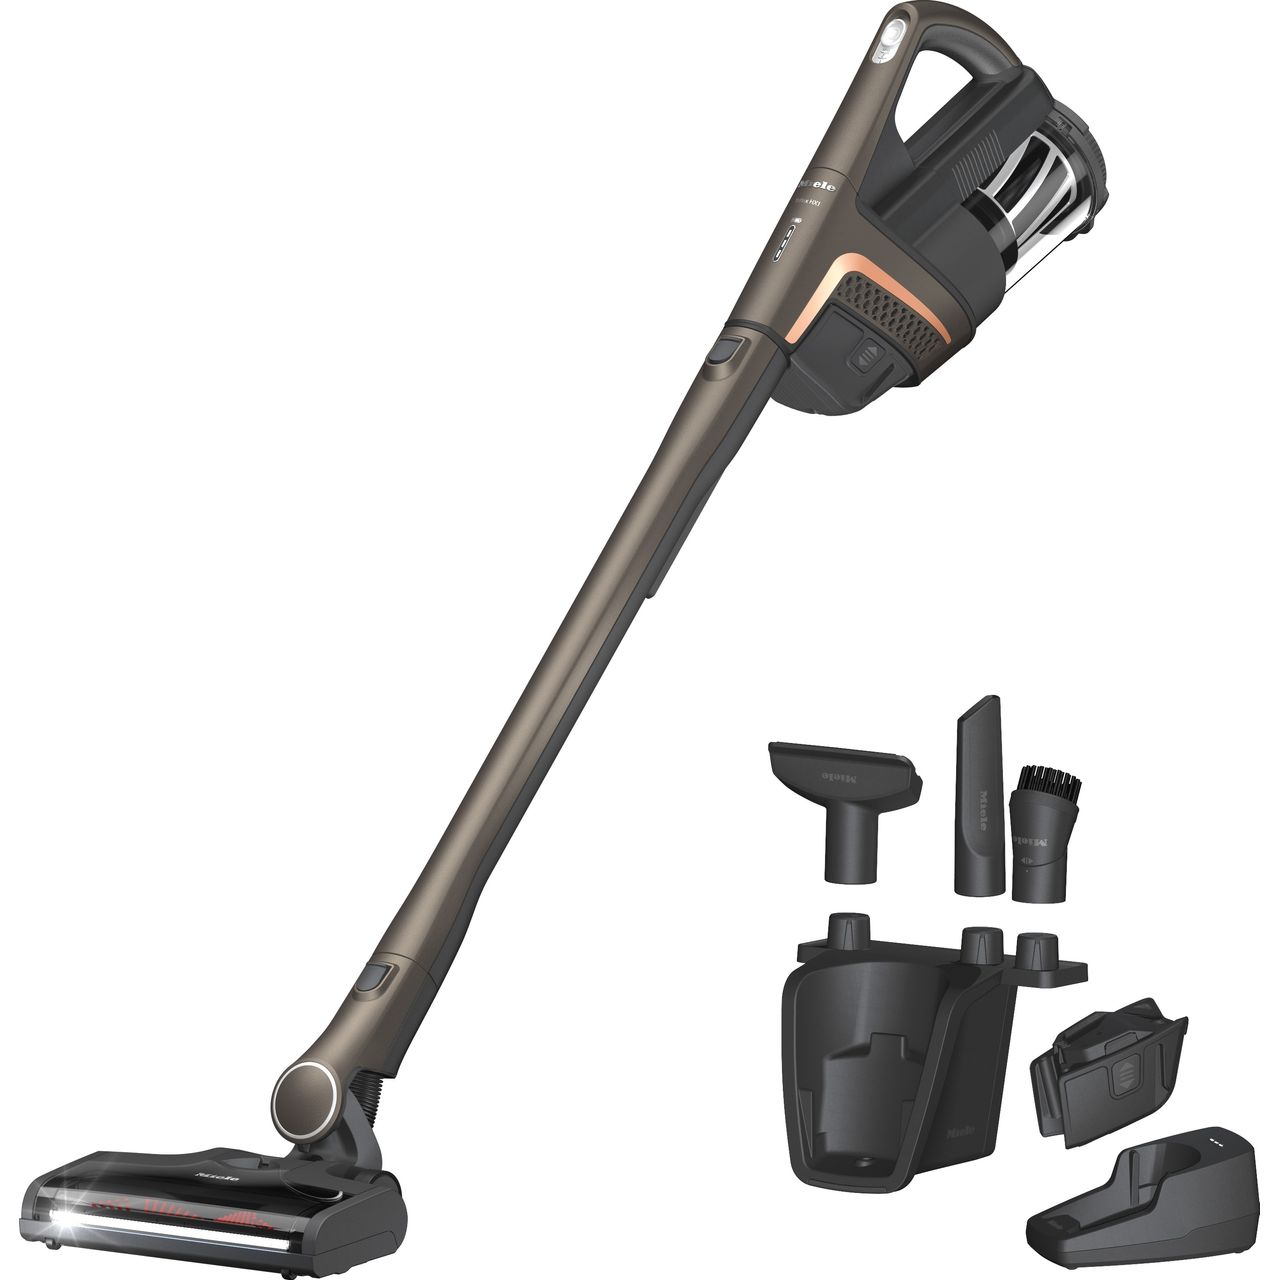 Miele Triflex HX1 Pro Cordless Vacuum Cleaner with up to 120 Minutes Run Time